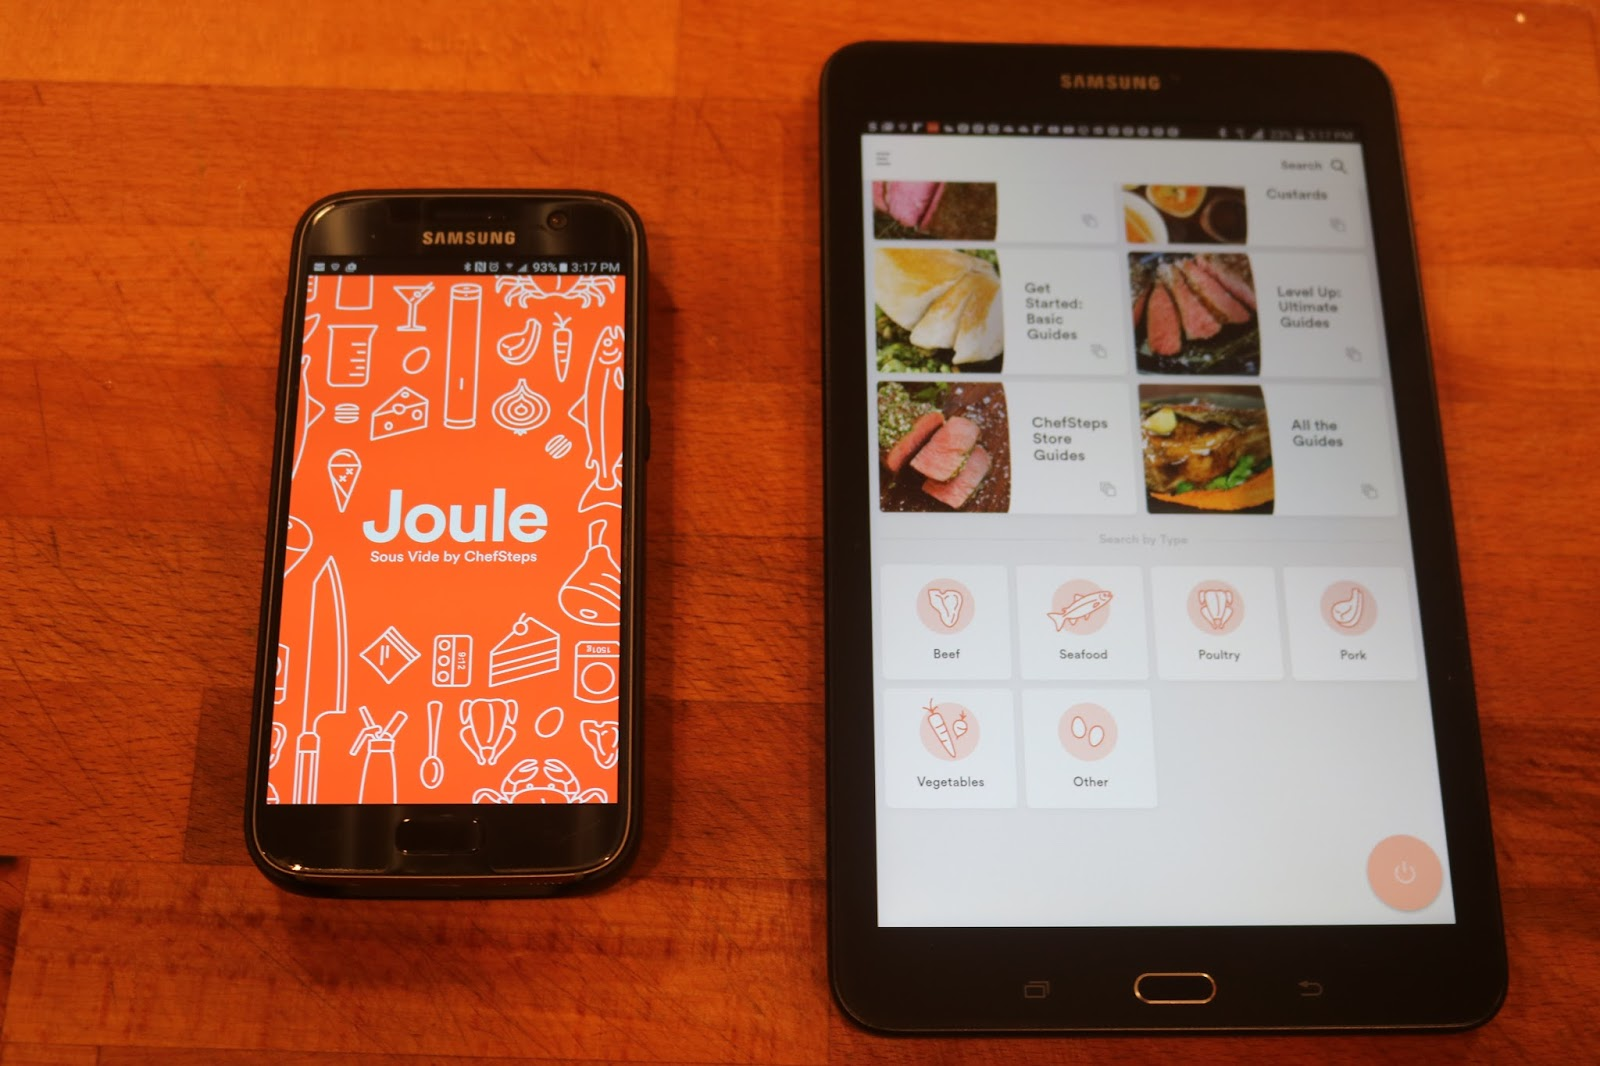 uncle t s kitchen review of joule sous vide by chefsteps